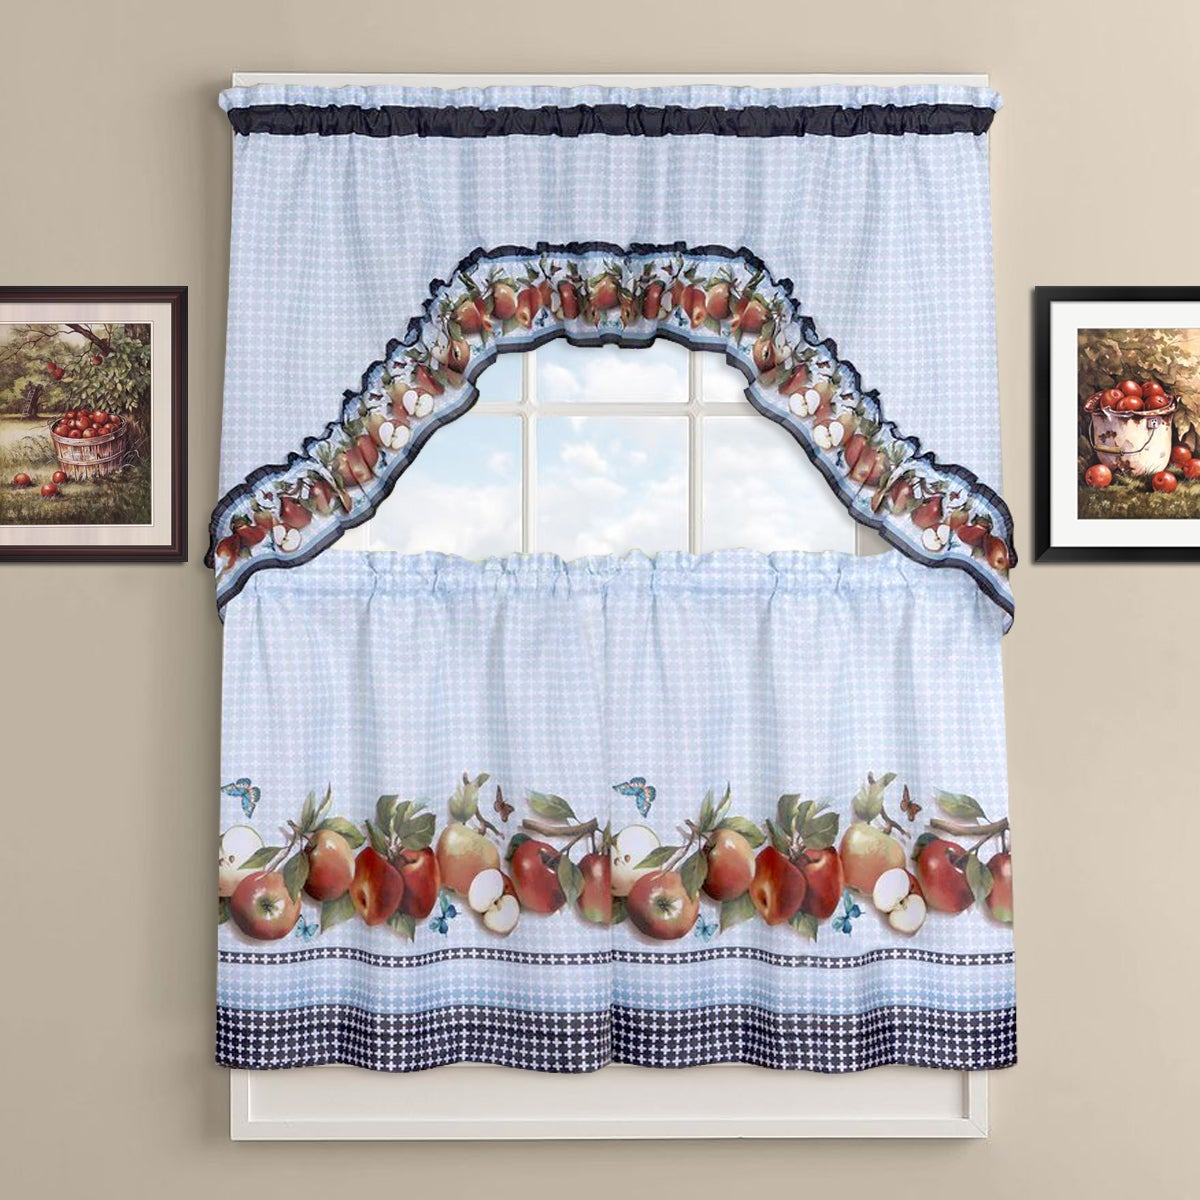 Delicious Apples Kitchen Curtain Tier And Valance Set Intended For Apple Orchard Printed Kitchen Tier Sets (View 2 of 20)